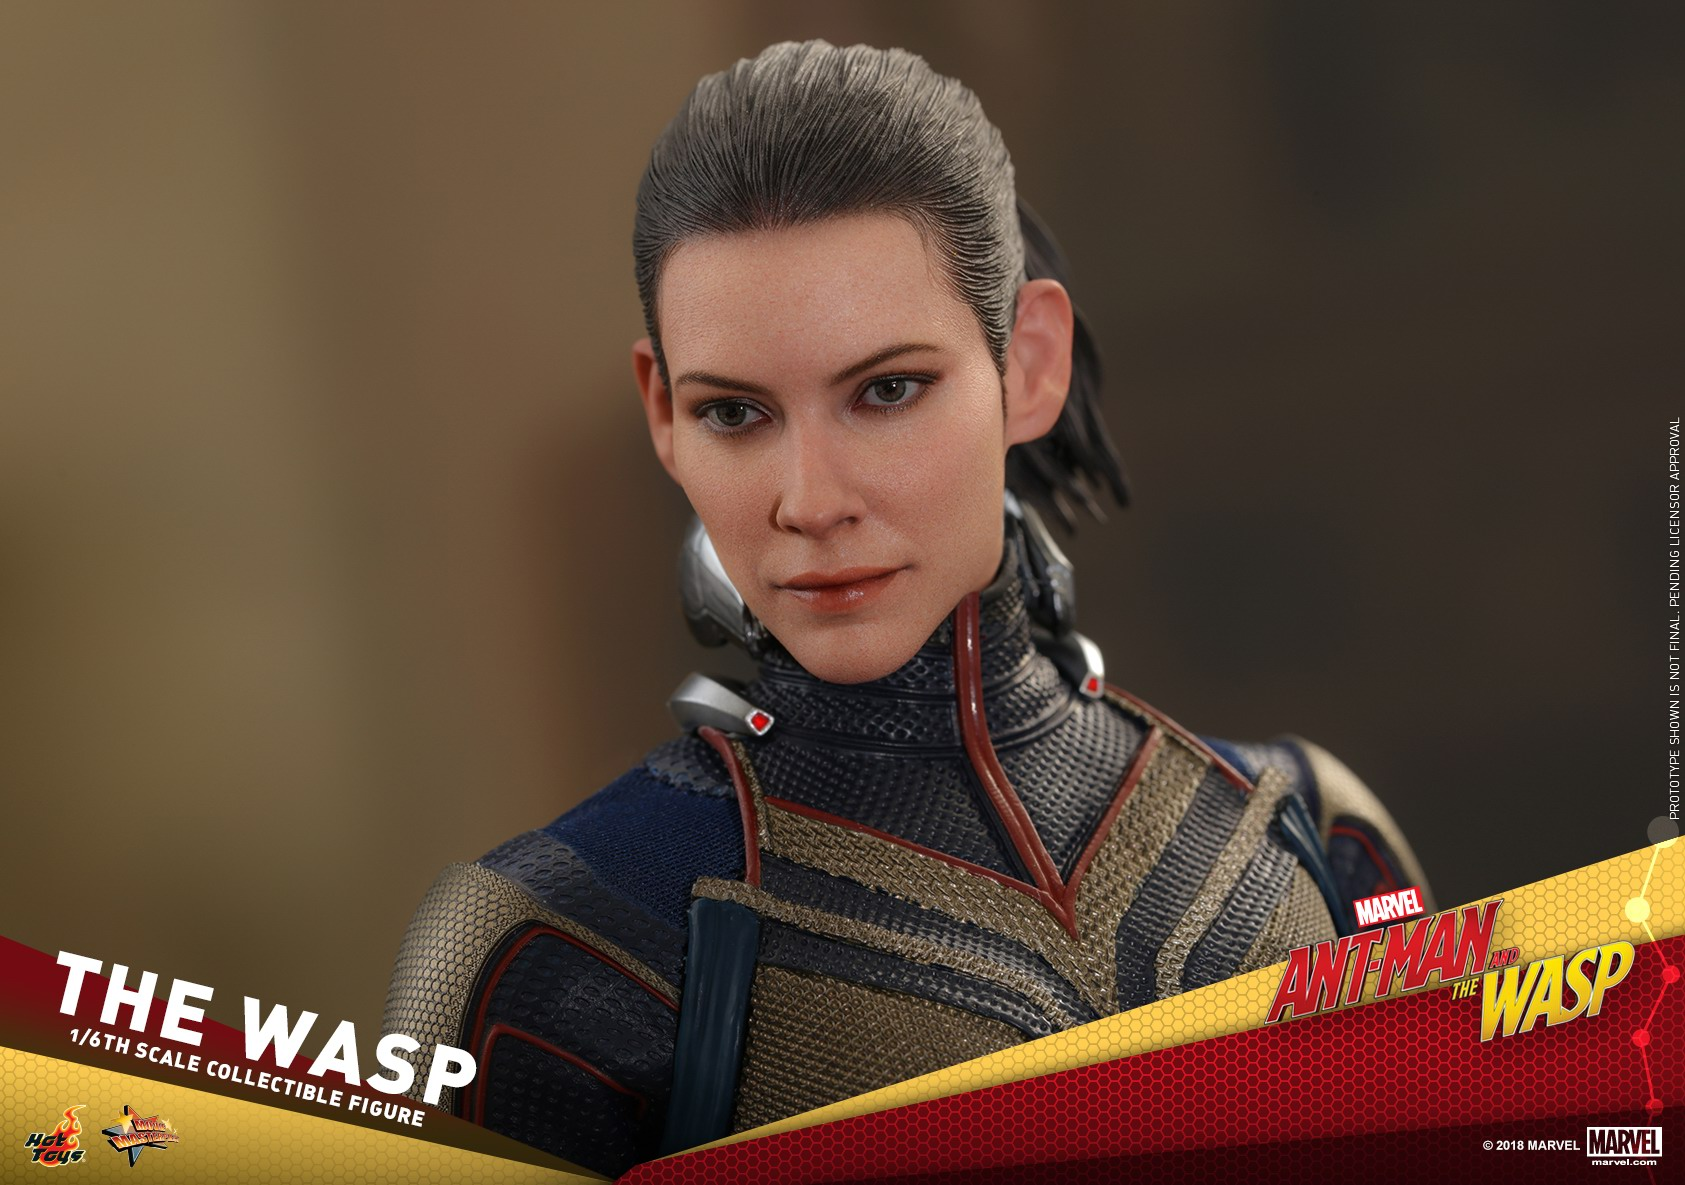 Hot-Toys-Ant-Man-and-The-Wasp-The-Wasp-Collectible-Figure_PR3.jpg